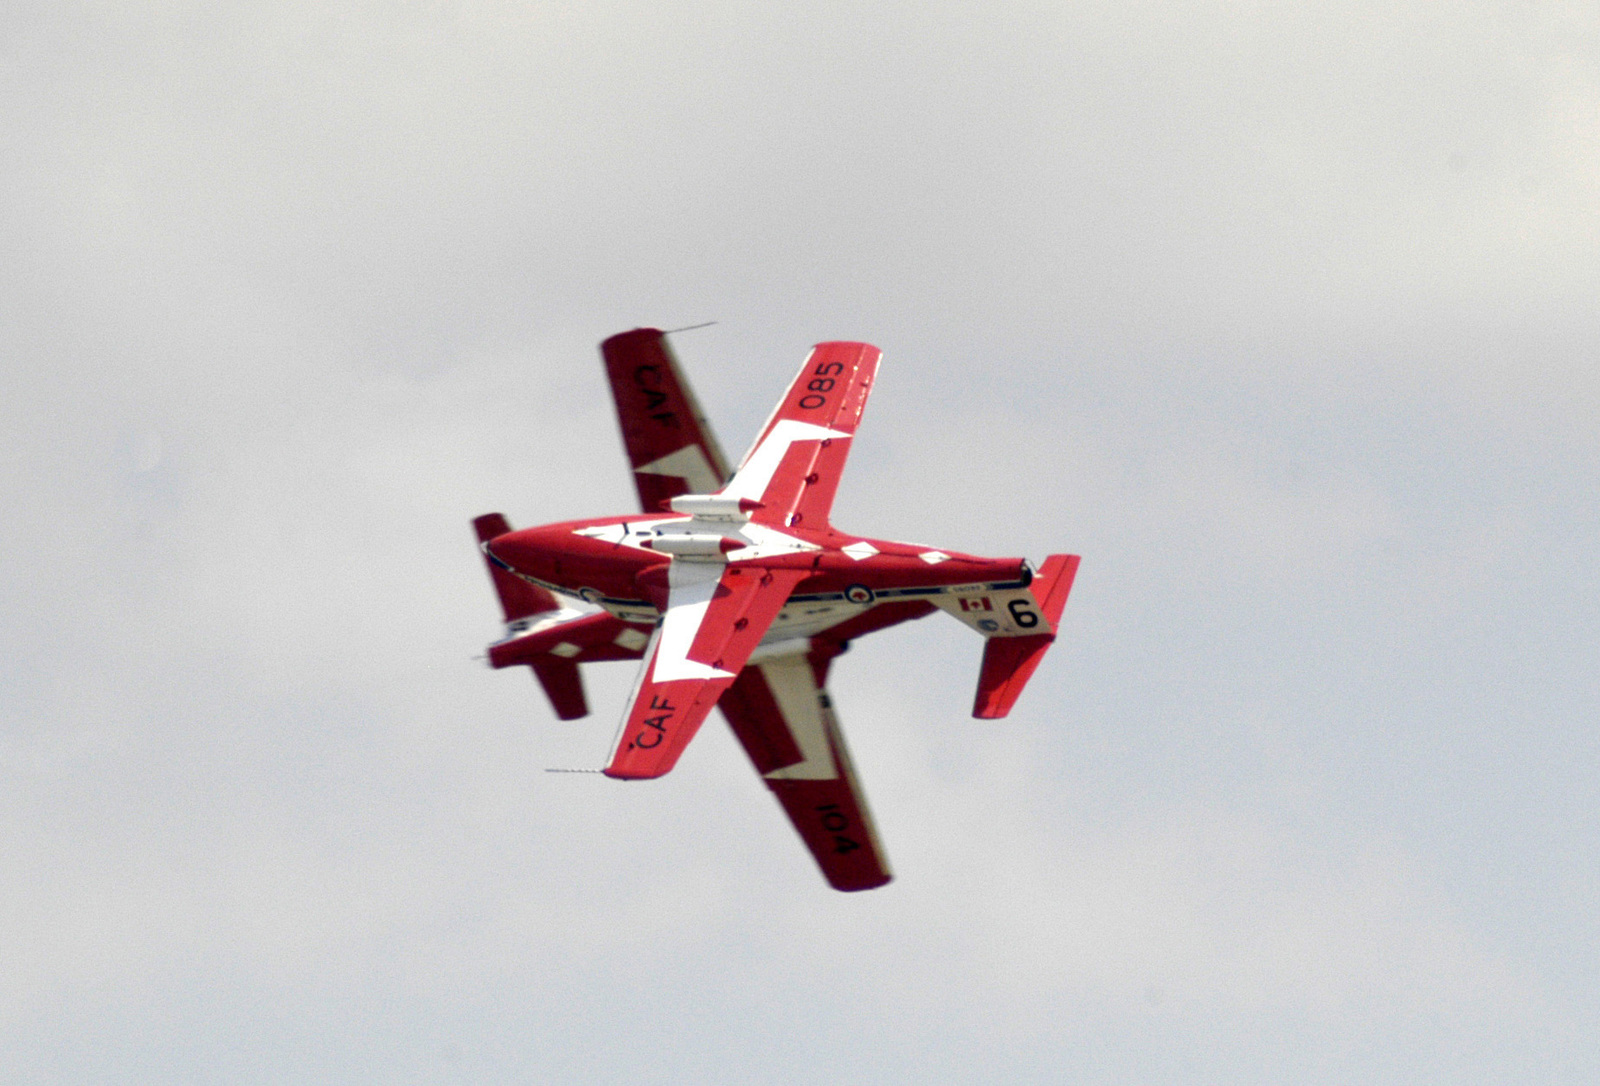 Two Canadian Forces Air Command CT-114 Tutor basic pilot training aircraft assigned to the 431 Squadrons Aerial Demonstration Team Snowbirds perform a crossing maneuver during the Joint Service Open House Celebration held on the flight line at Andrews Air Force Base (AFB), Maryland (MD). The open house showcased civilian and military aircraft and provided many flight demonstrations and static displays